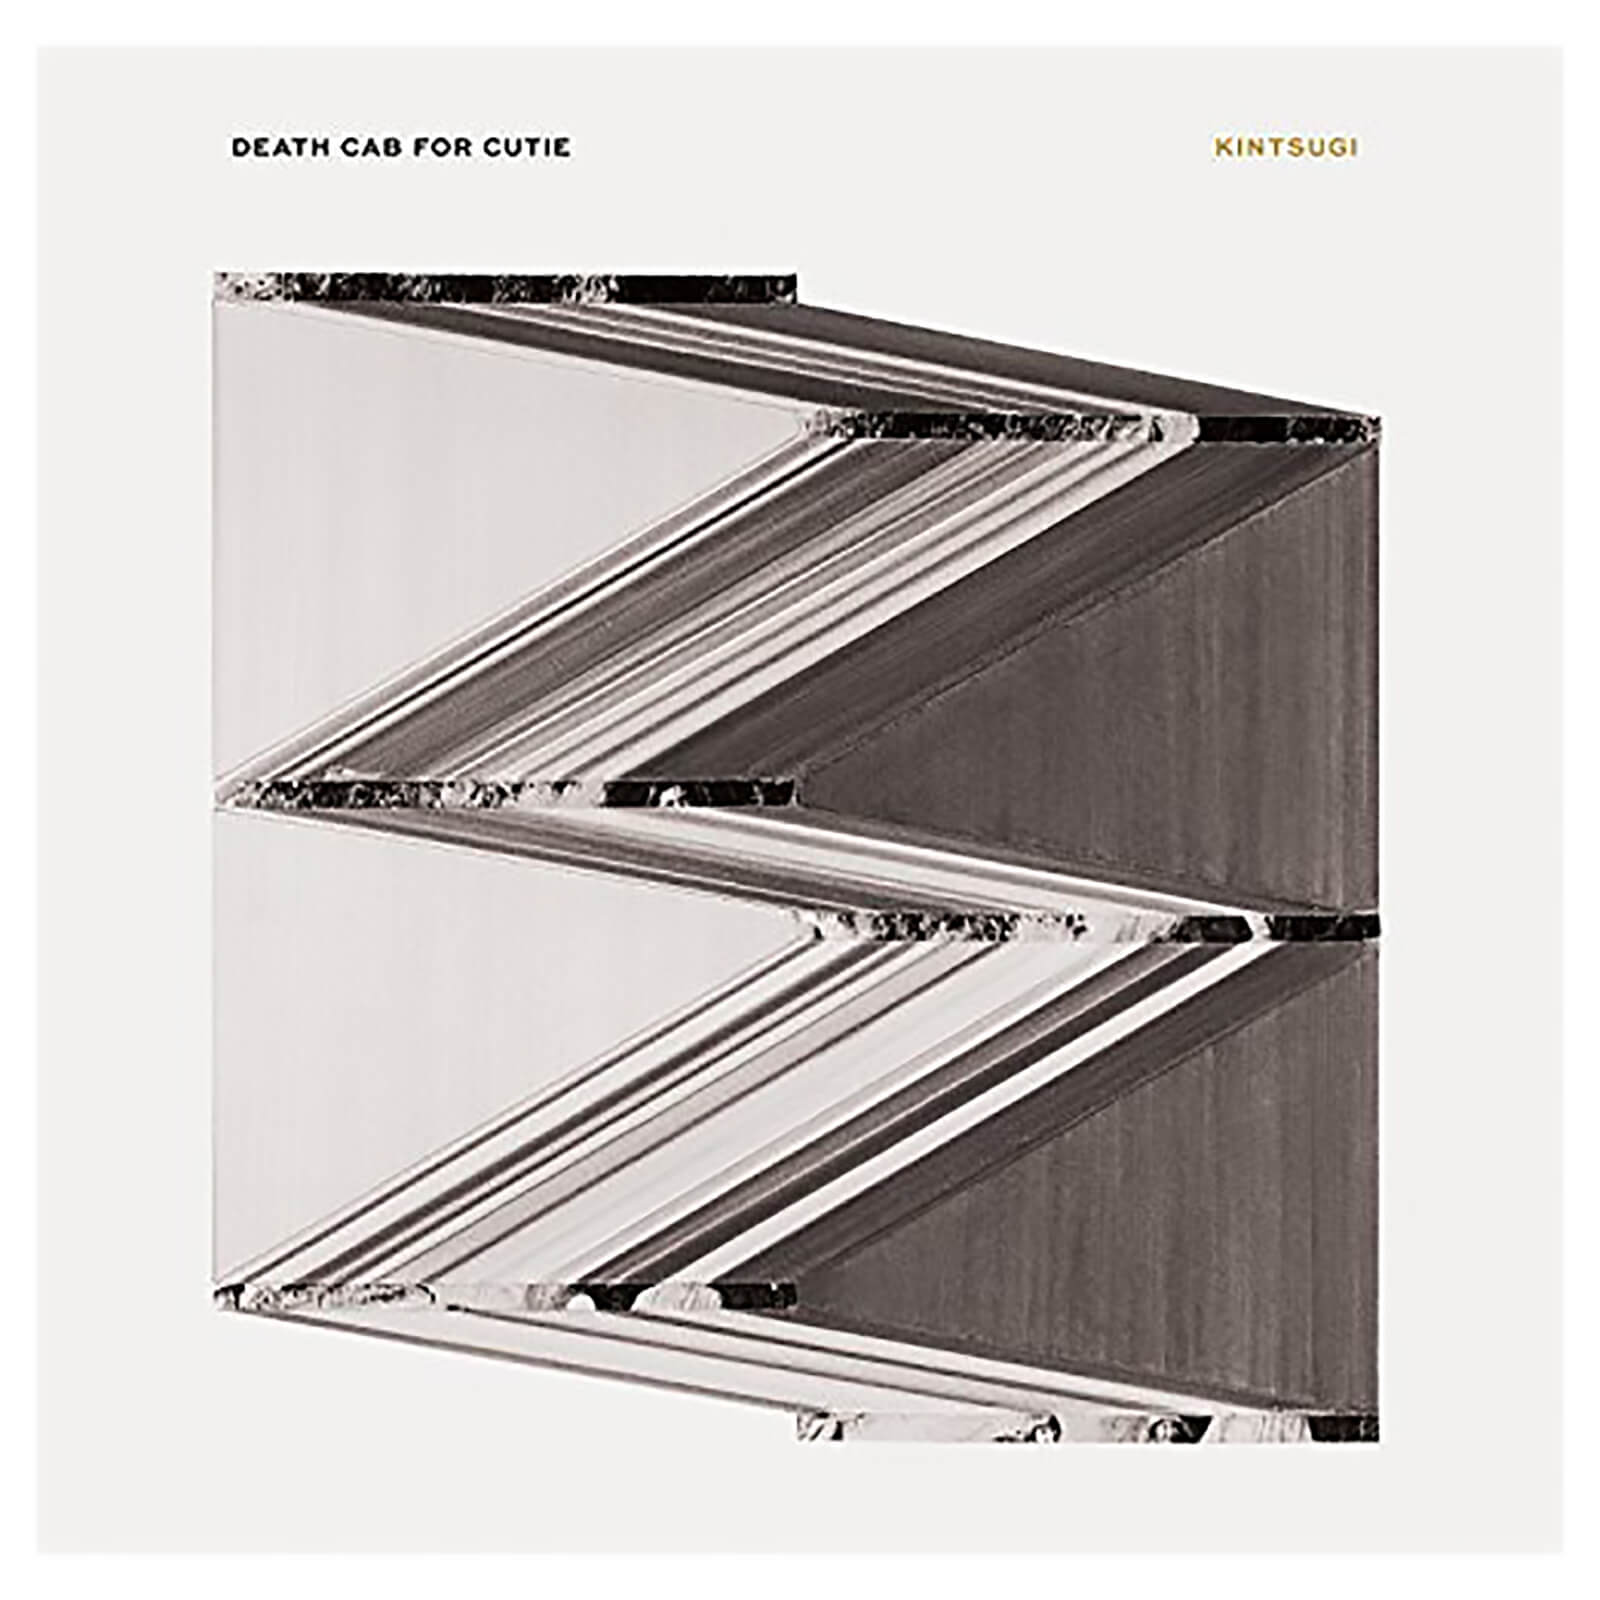 Death Cab For Cutie - Kintsugi - Vinyl